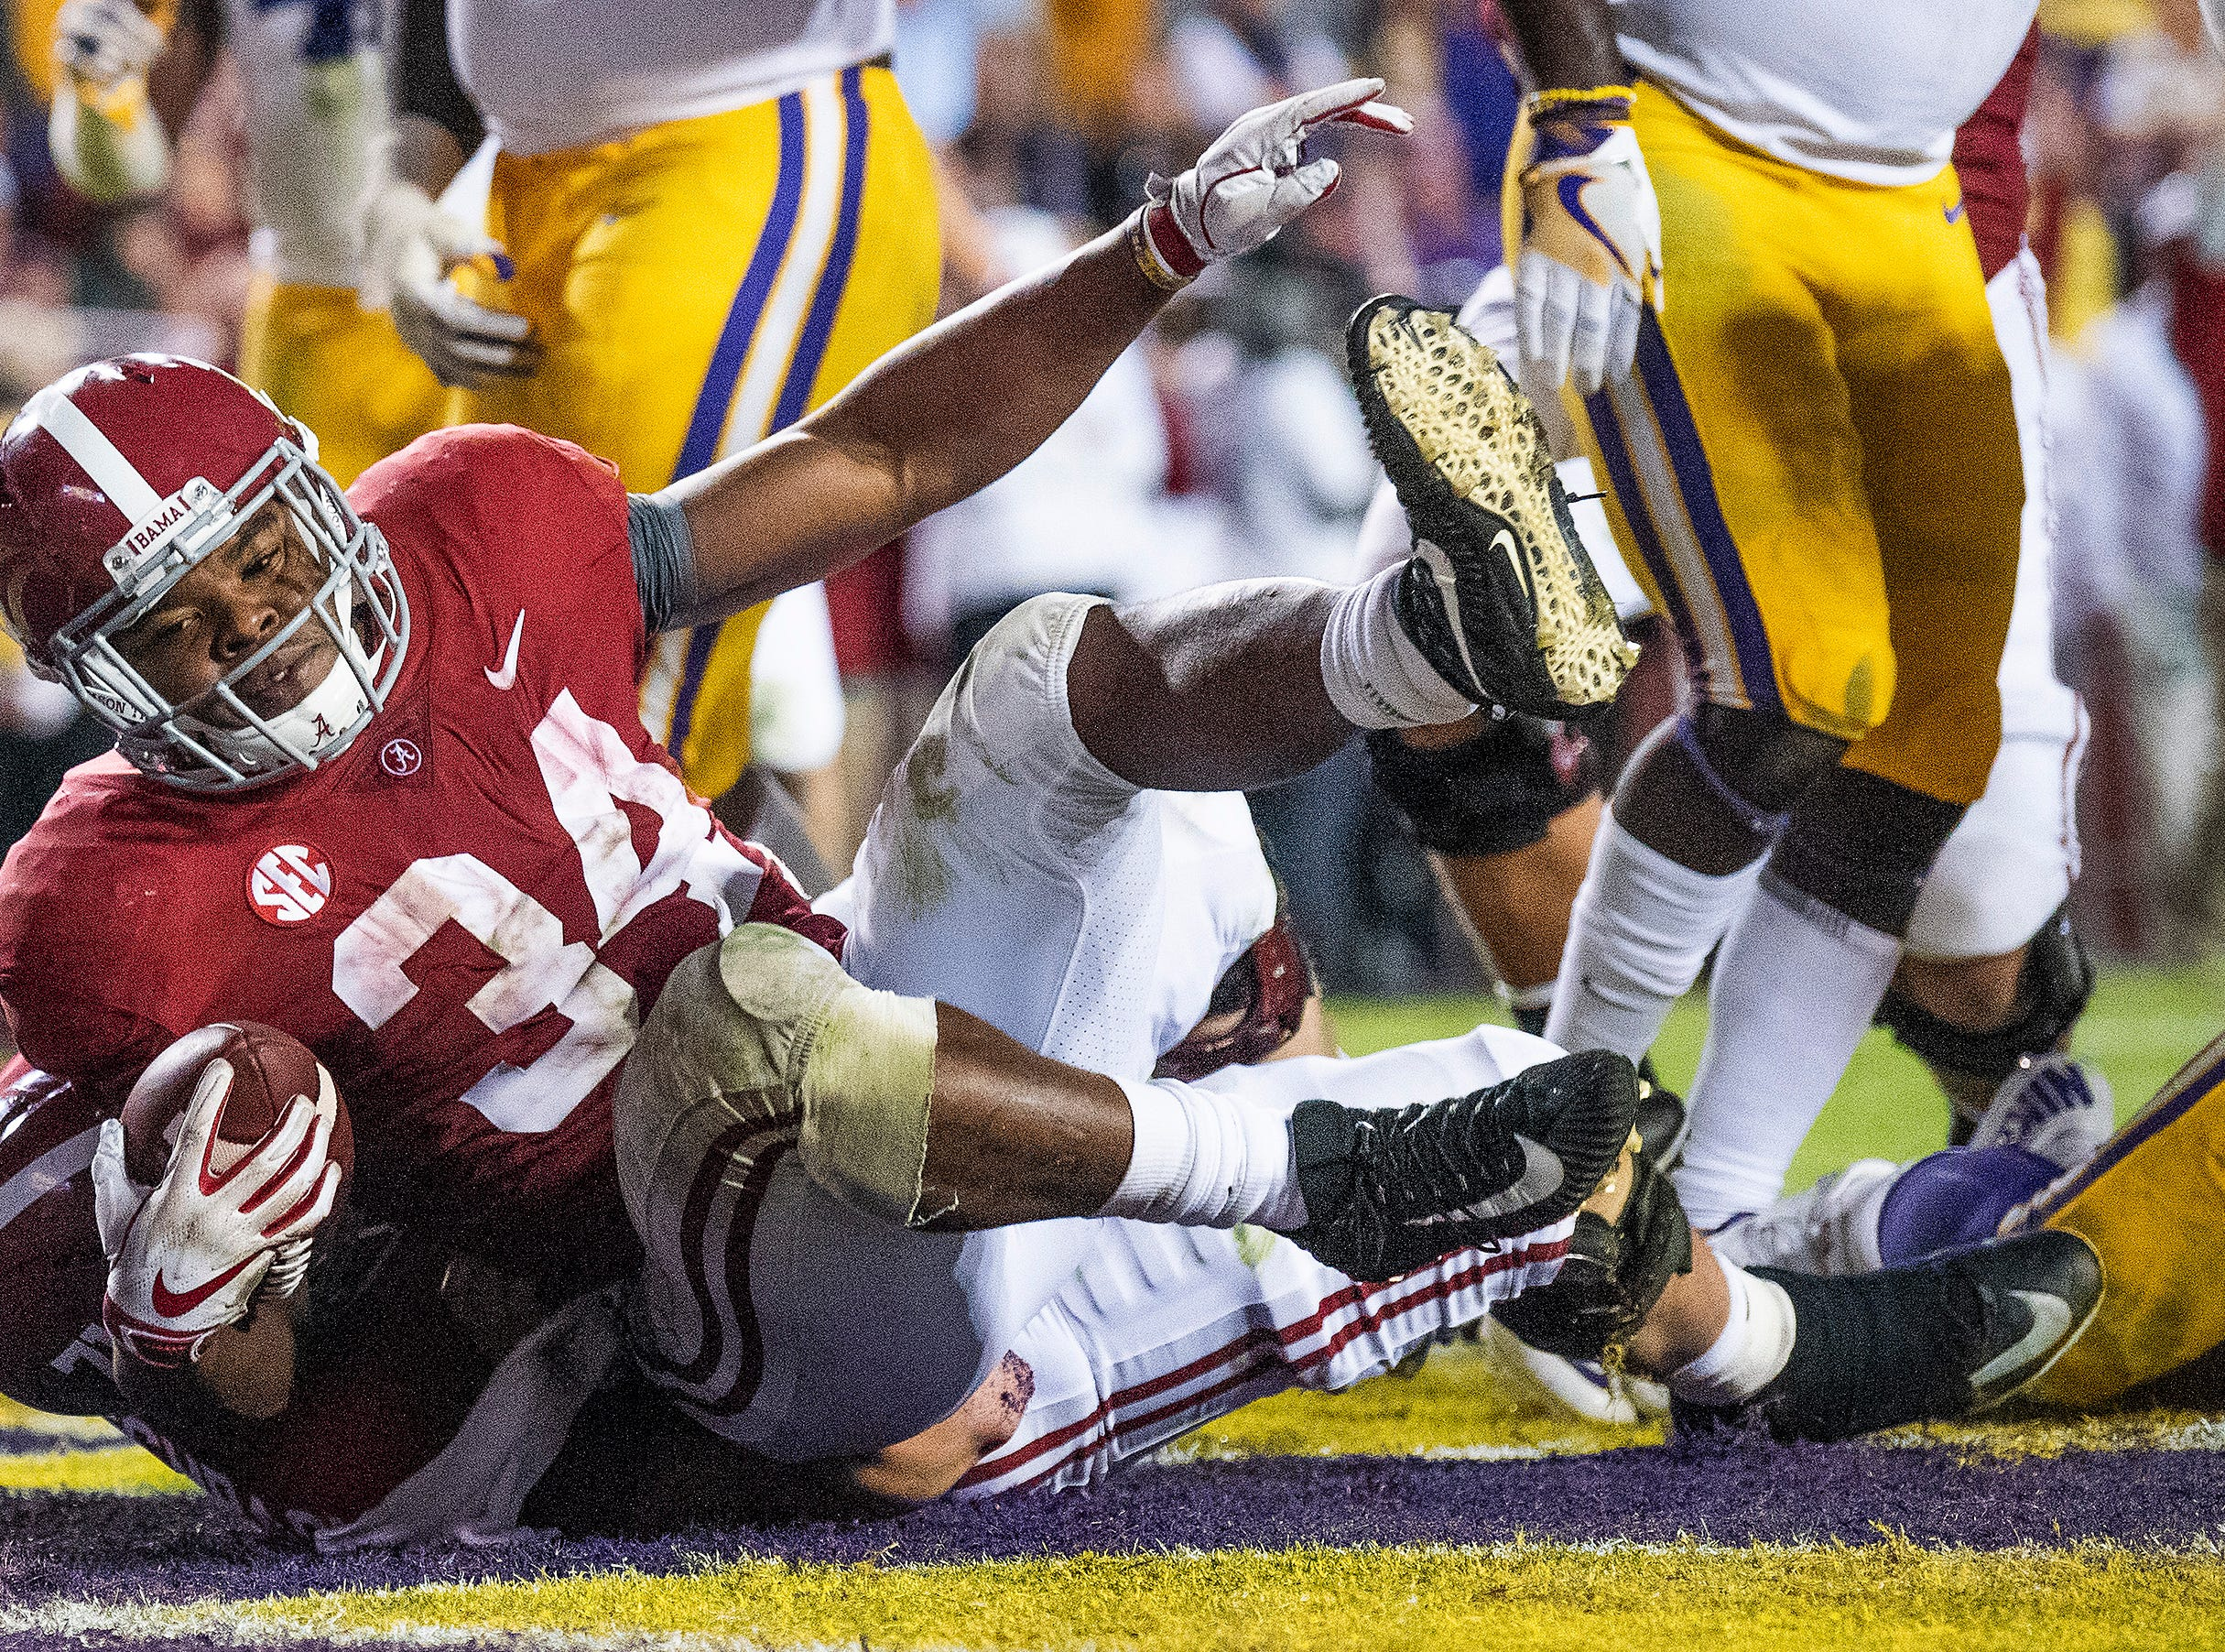 Alabama running back Damien Harris (34) scores a touchdown against Louisiana State University in second half action at Tiger Stadium in Baton Rouge, La., on Saturday November 3, 2018.